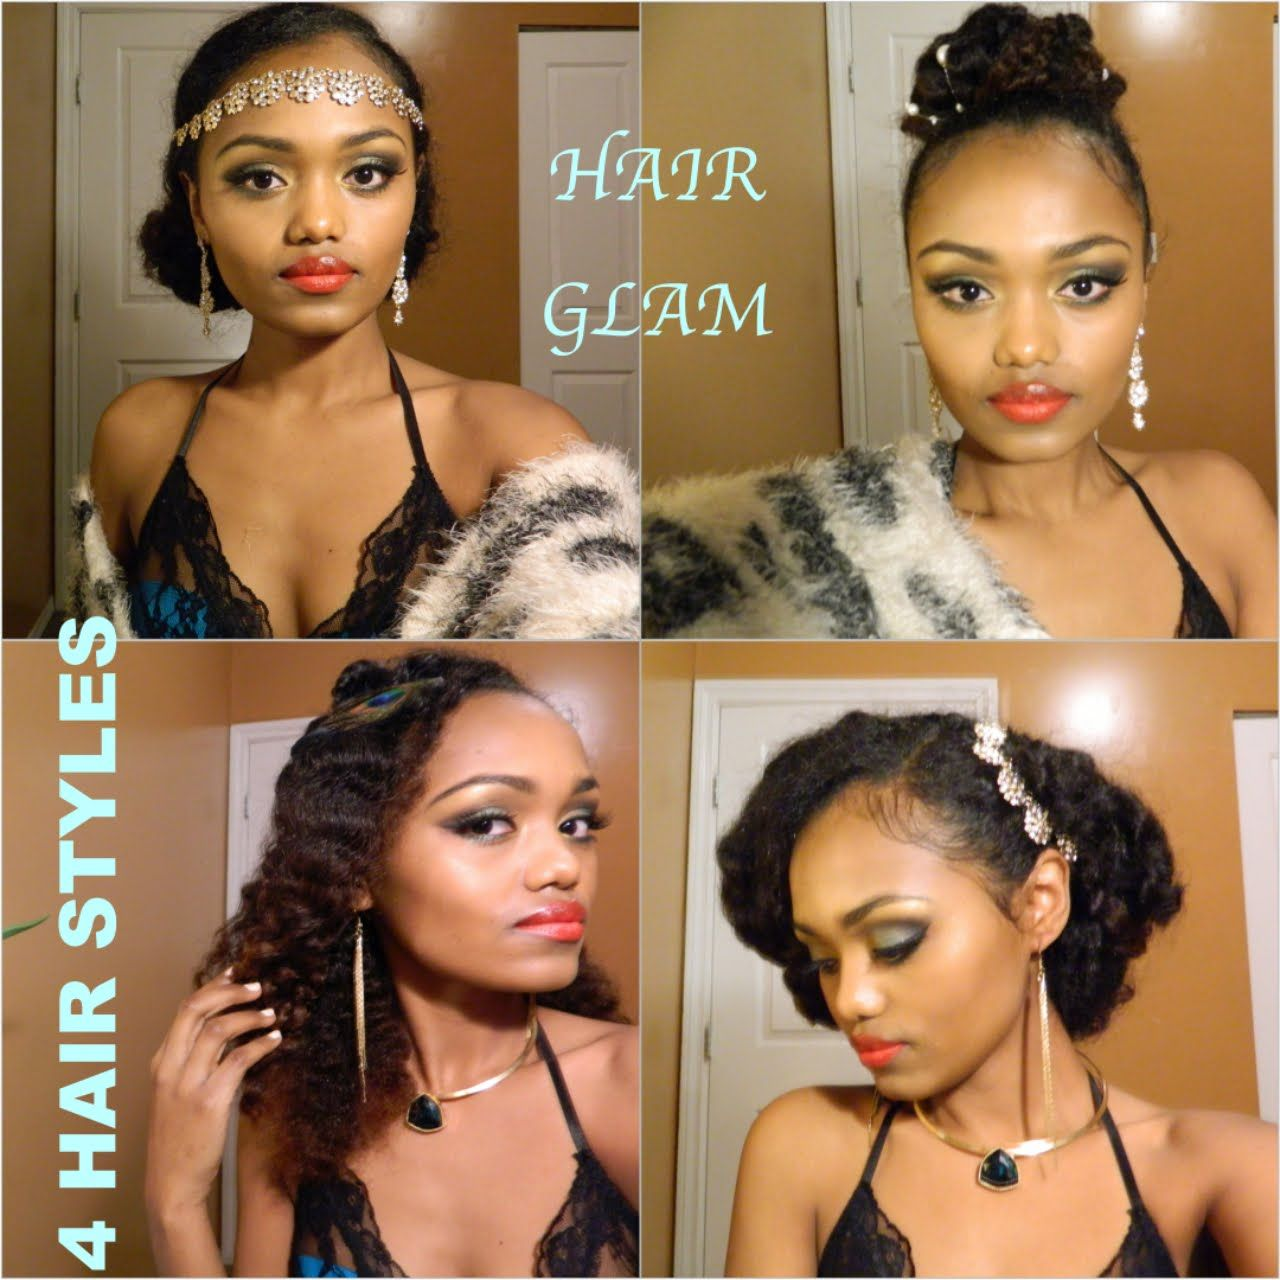 the great gatsby inspired 4 hair styles | 5 min or less, no